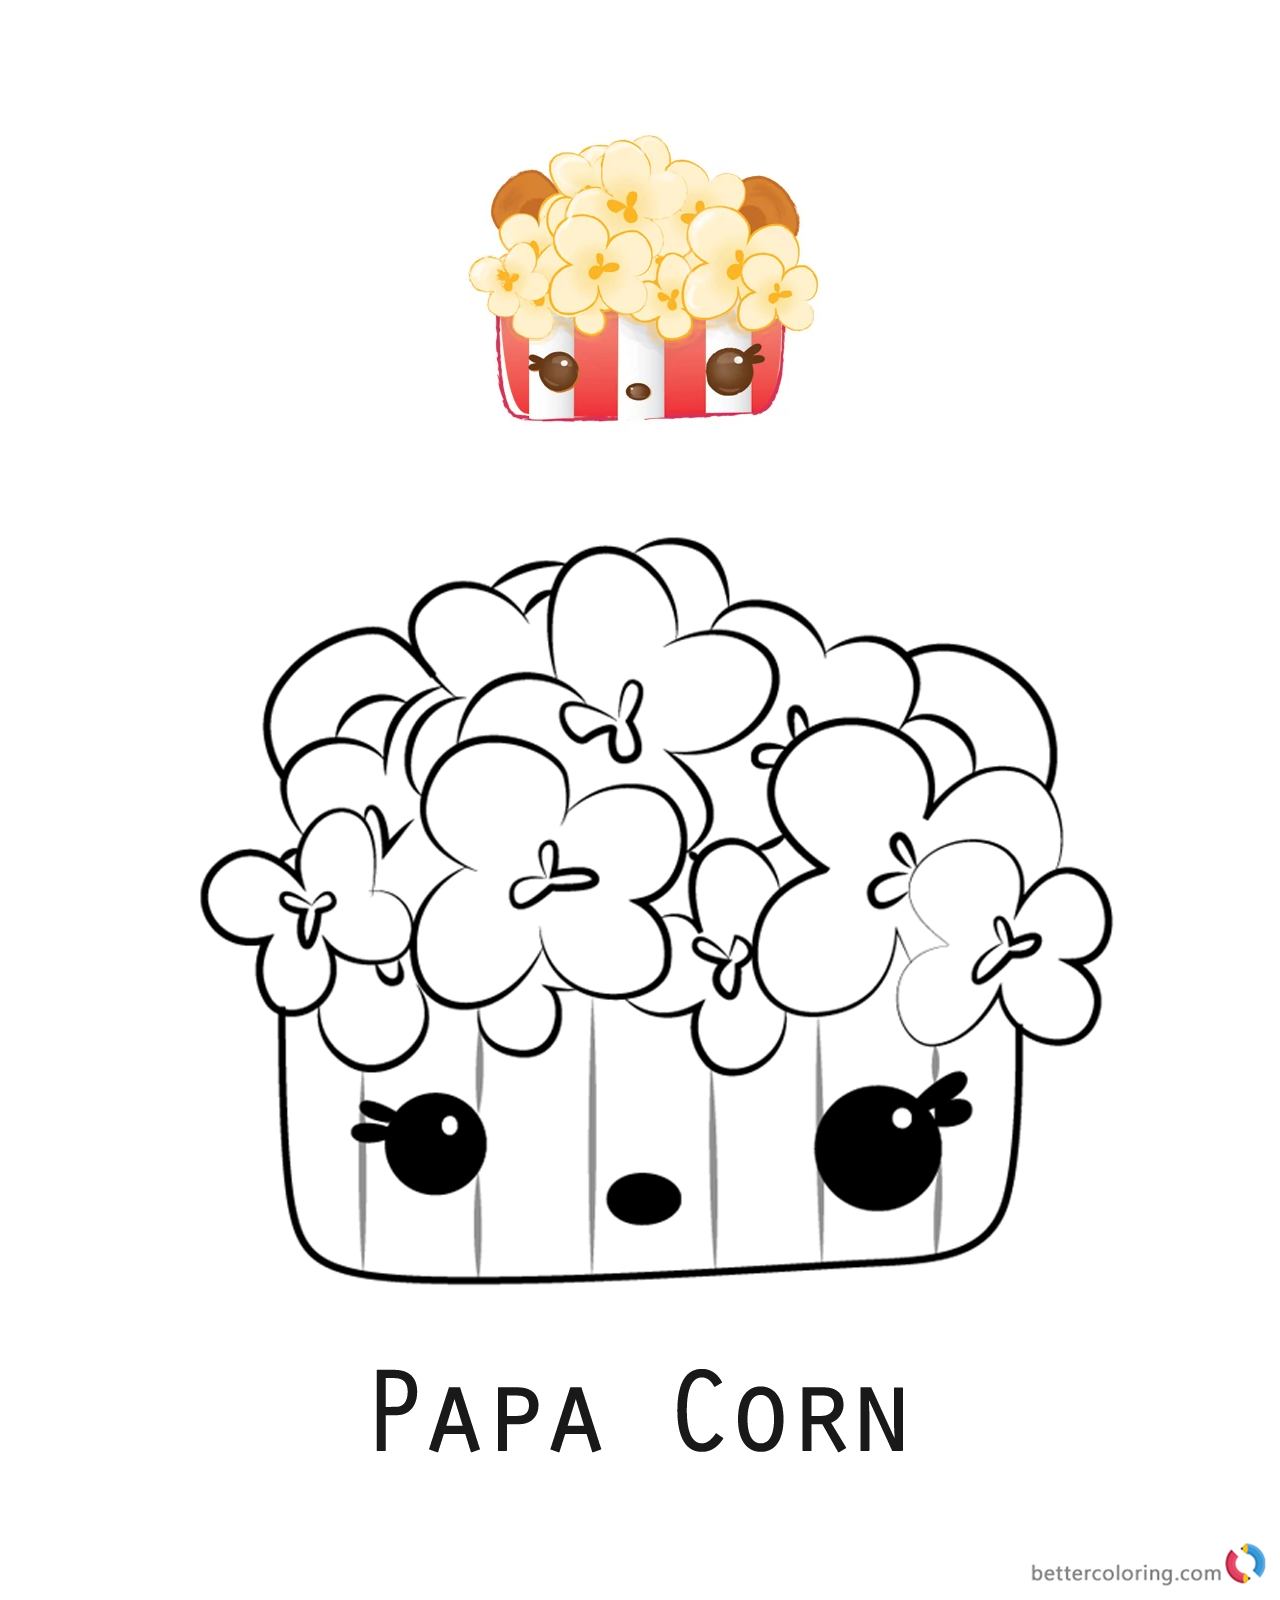 Papa Corn from Num Noms coloring pages printable